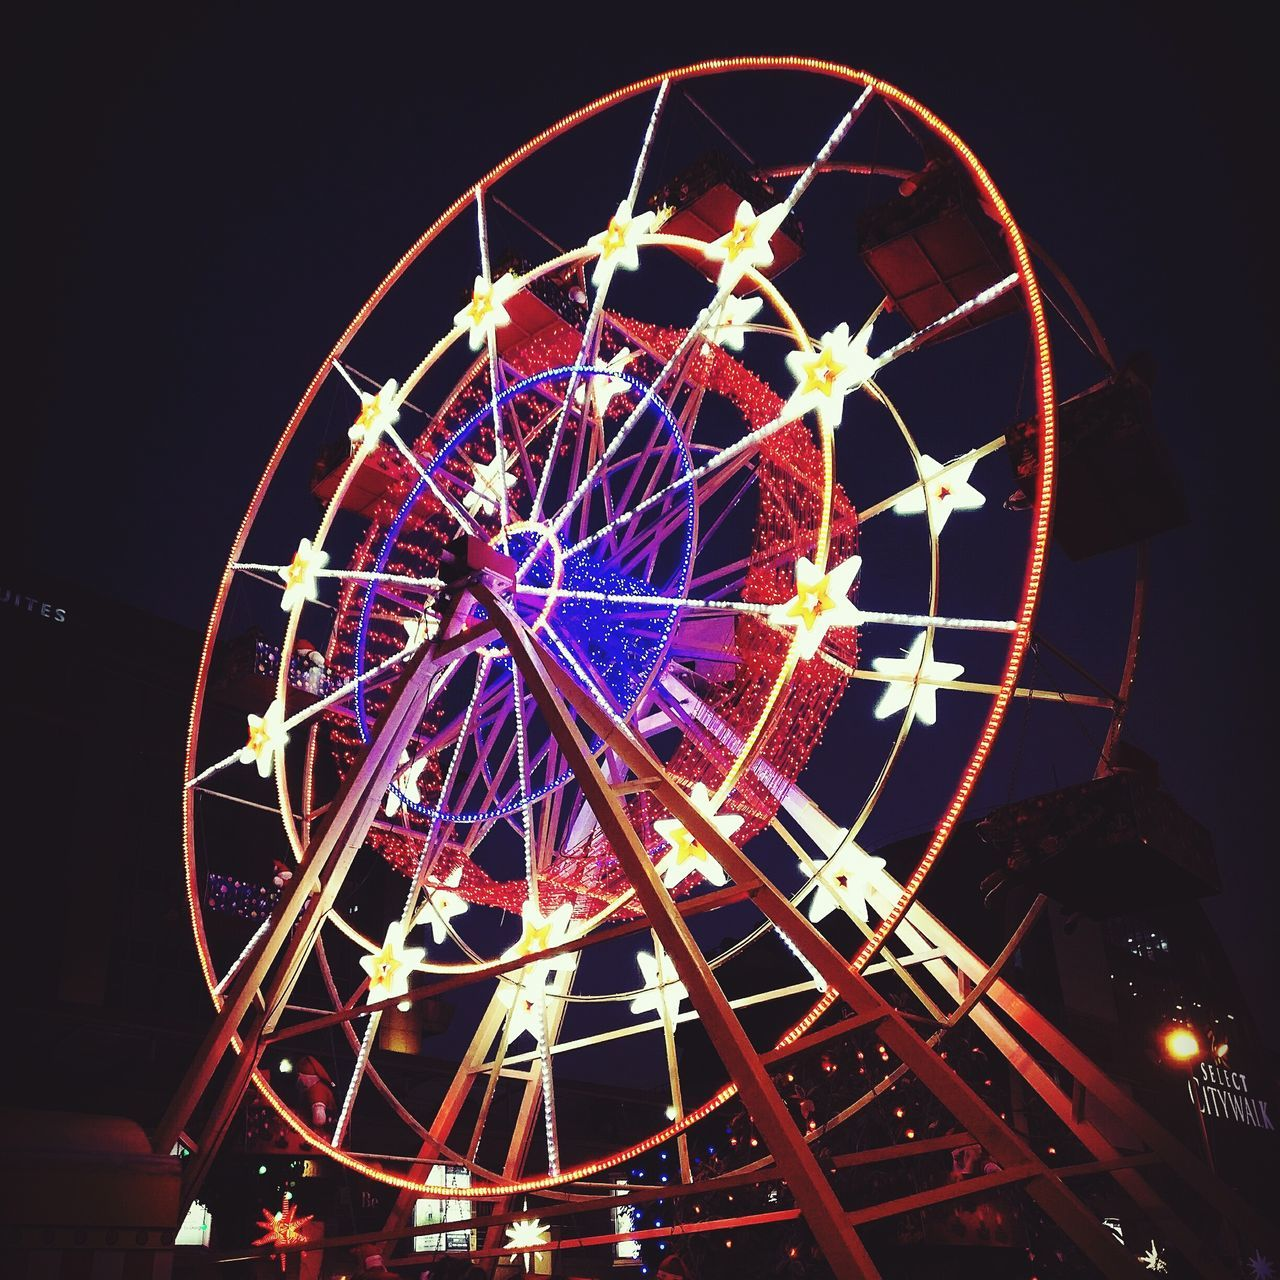 Ferris Wheel Night Illuminated Outdoors ArtWork Colorful Festival Season MerryChristmas Festivity Festive Mood Outdoor Photography Oneplus3 India